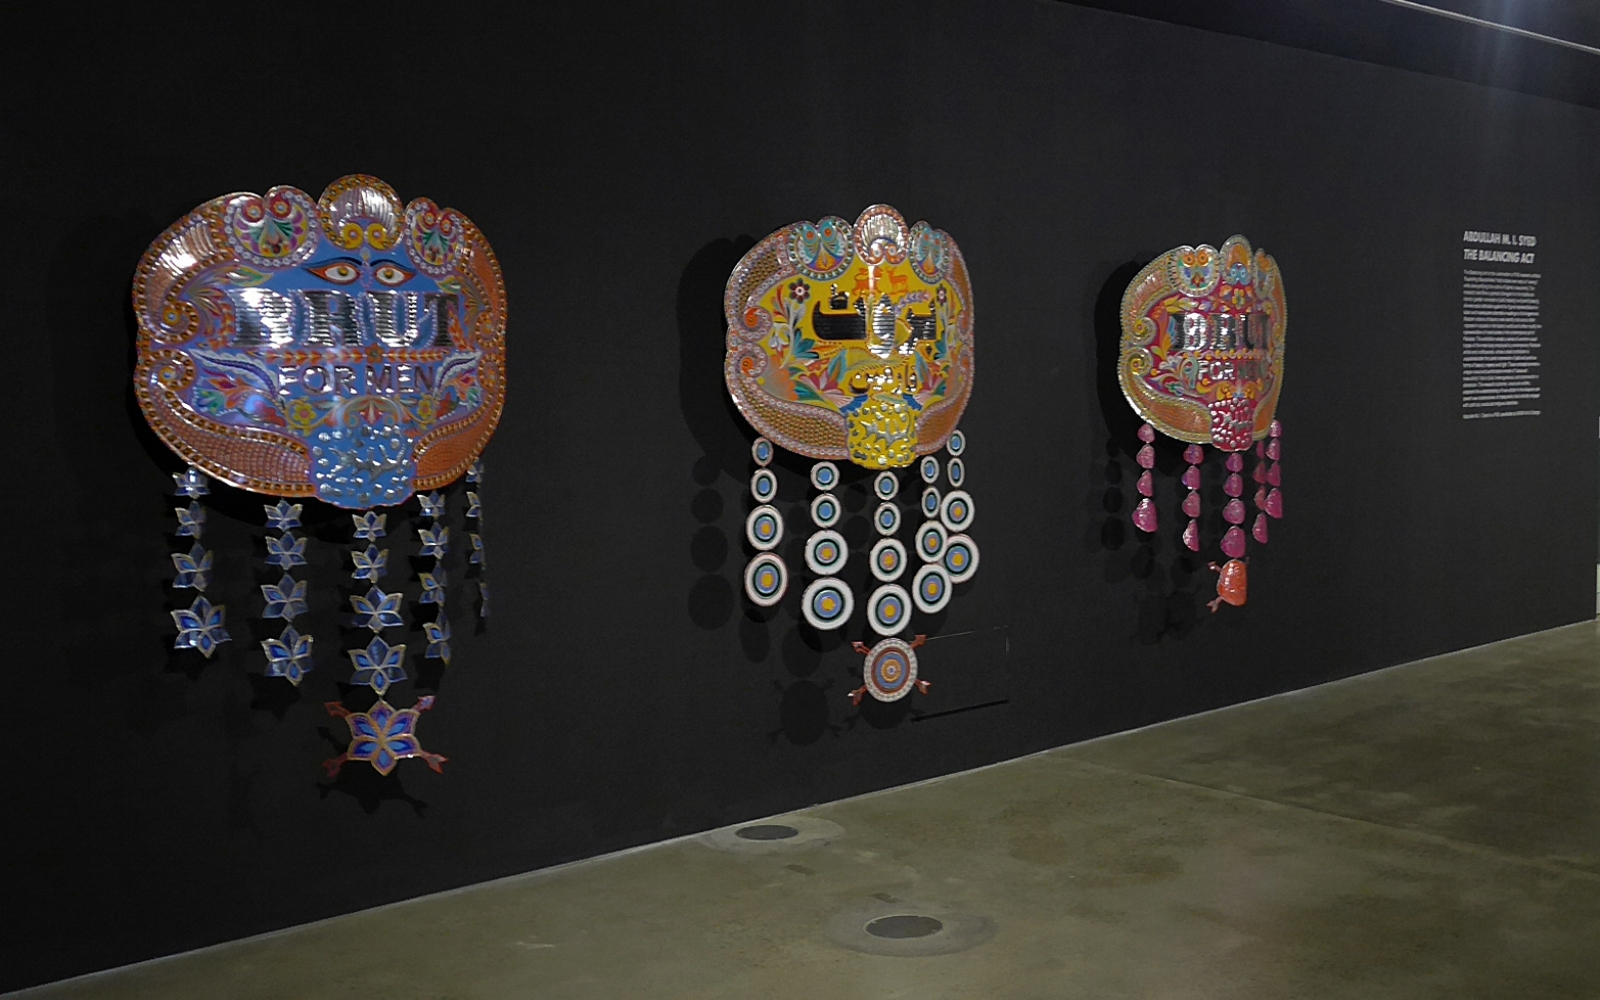 Brut for Men : Target, 2013, chamk patti (Hand-Cut Vinyl sticker ornamentation), hand beaten metal medallion, wood and stainless steel. 150 x 117 x 15 cm. In collaboration with Pakistani Truck Art craftspeople (Sahid Bhai's and his Karkhana Team, Karachi). Installation view: 4A Centre for Contemapoary Asian Art, Sydney